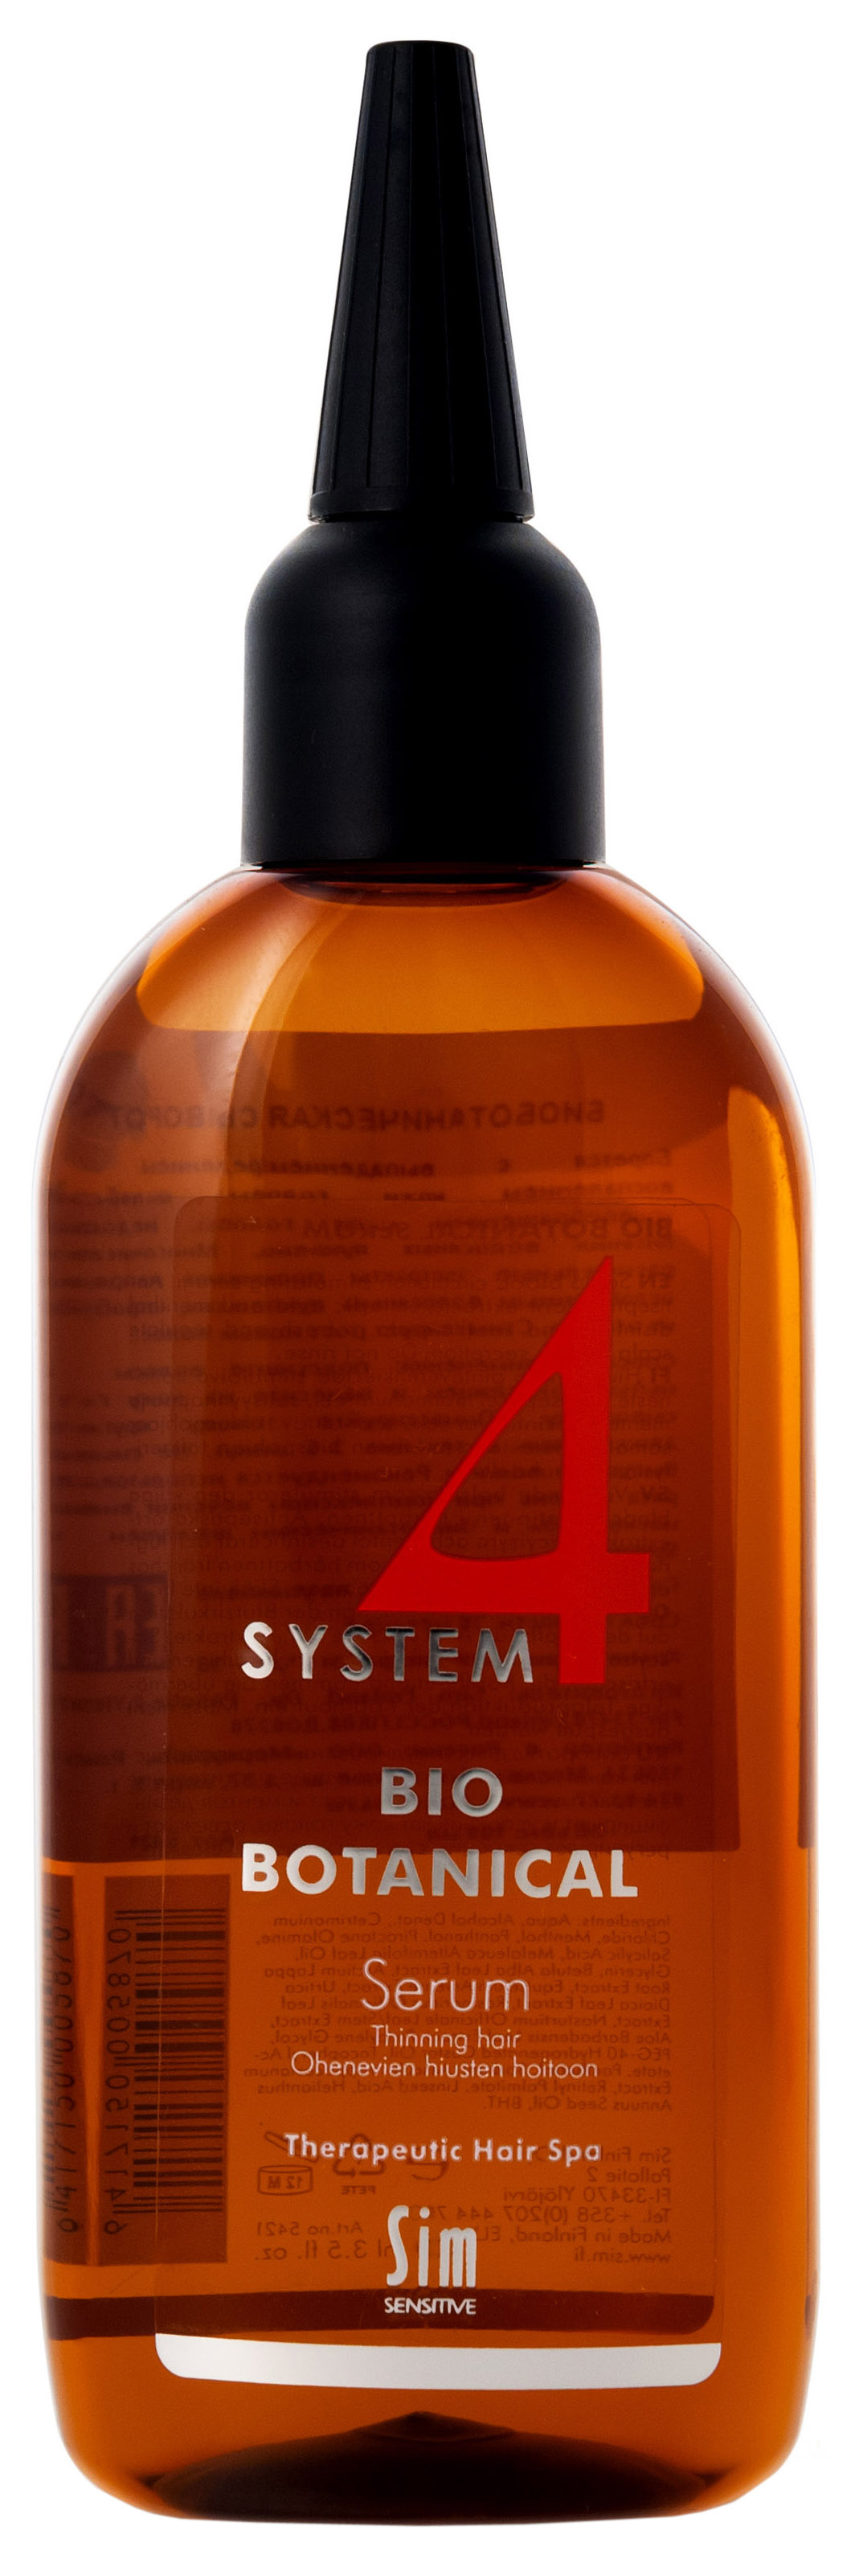 Шампунь Sim Sensitive System 4 Bio Botanical Shampoo для роста волос 100 мл